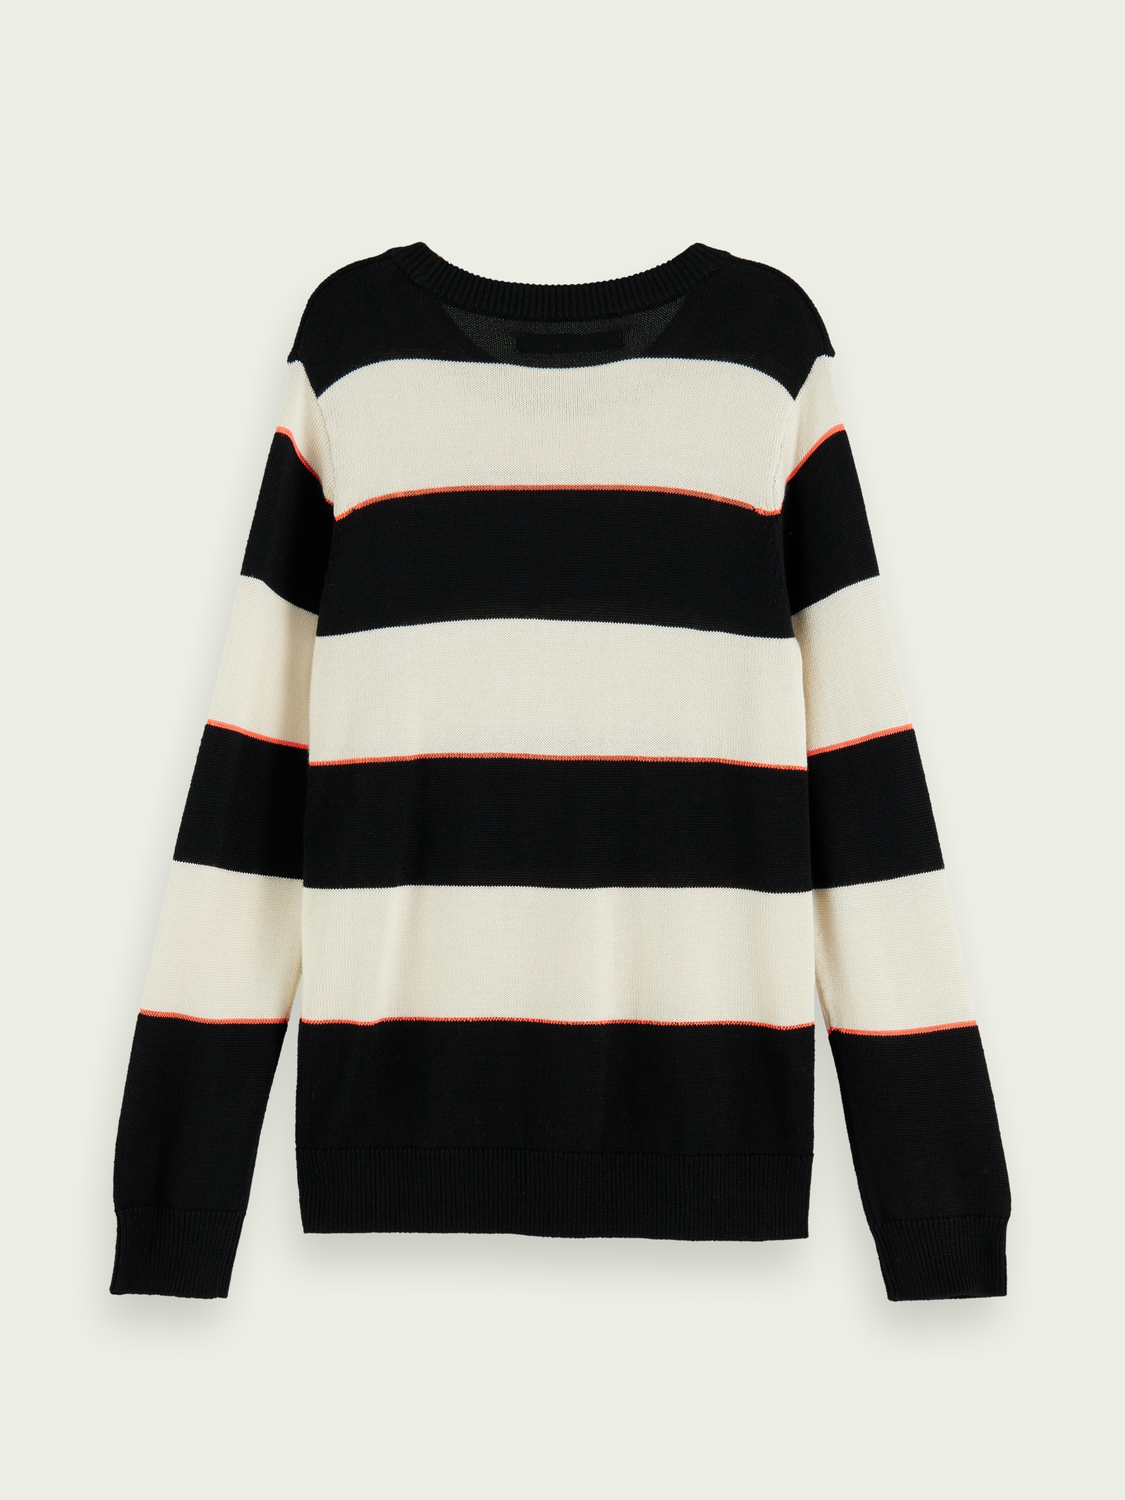 Kids Lightweight knit pullover with contrast detail